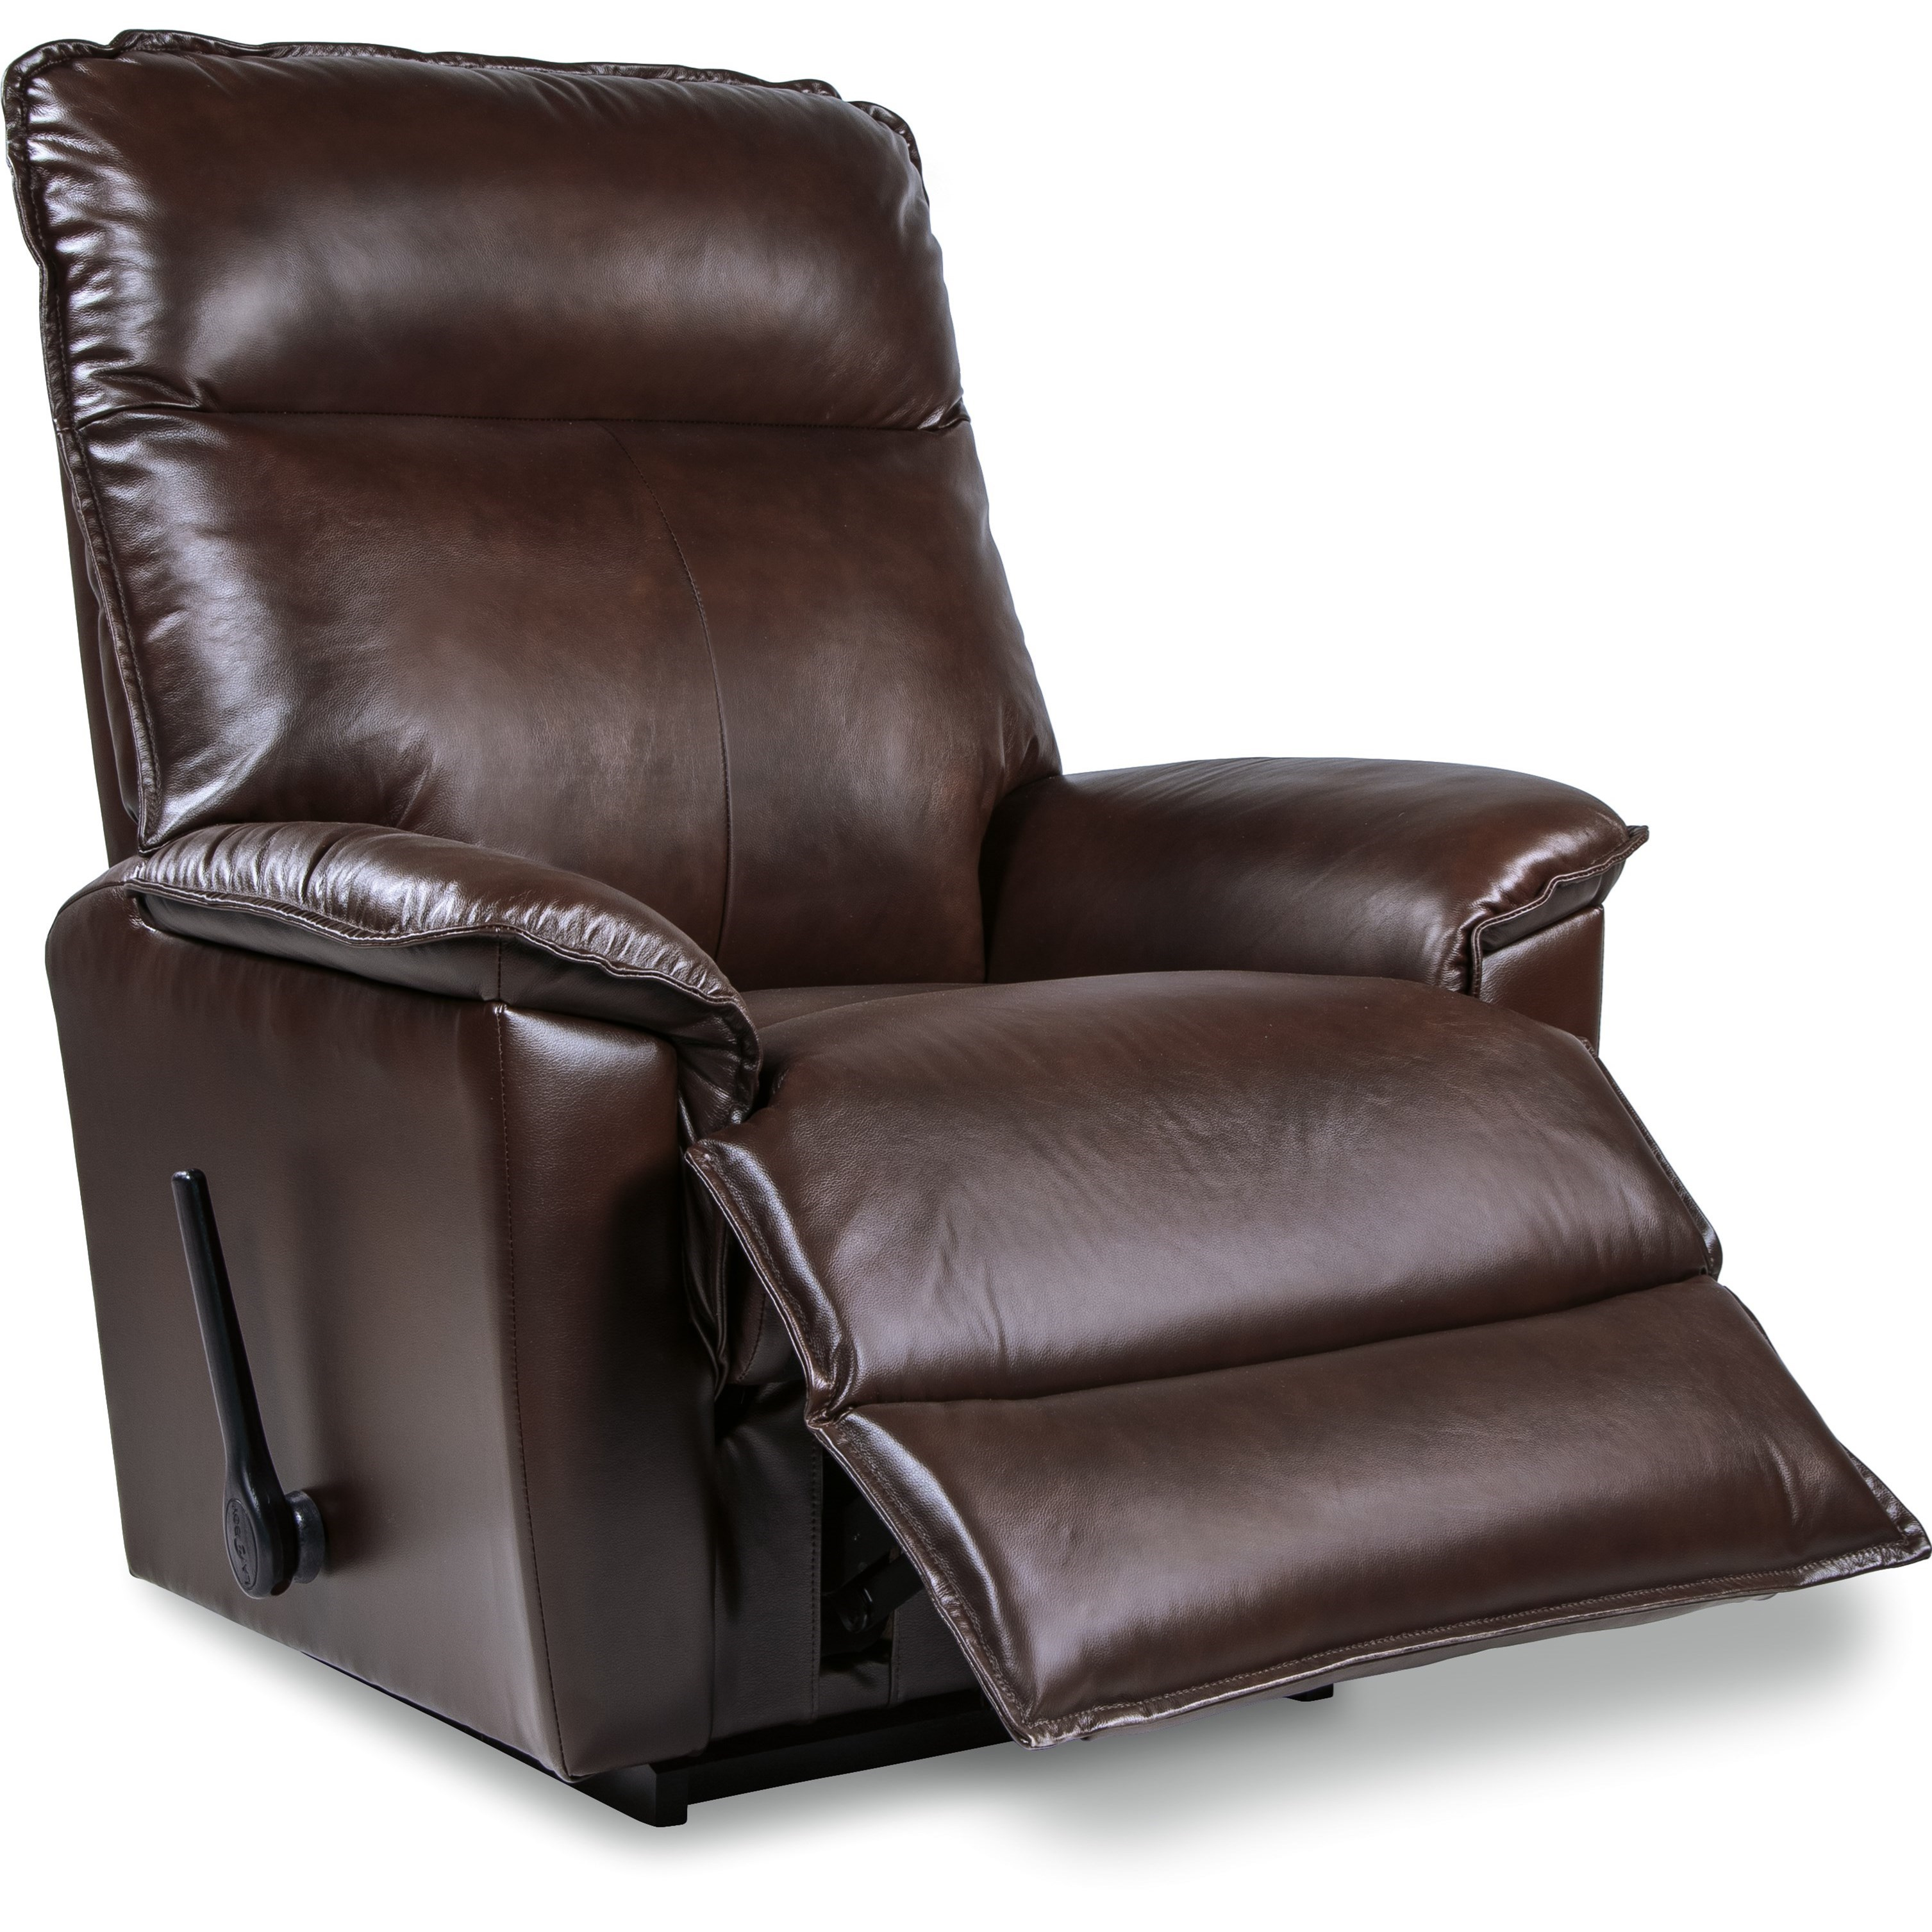 La Z Boy Jay Casual Power Recline Xr Rocking Recliner